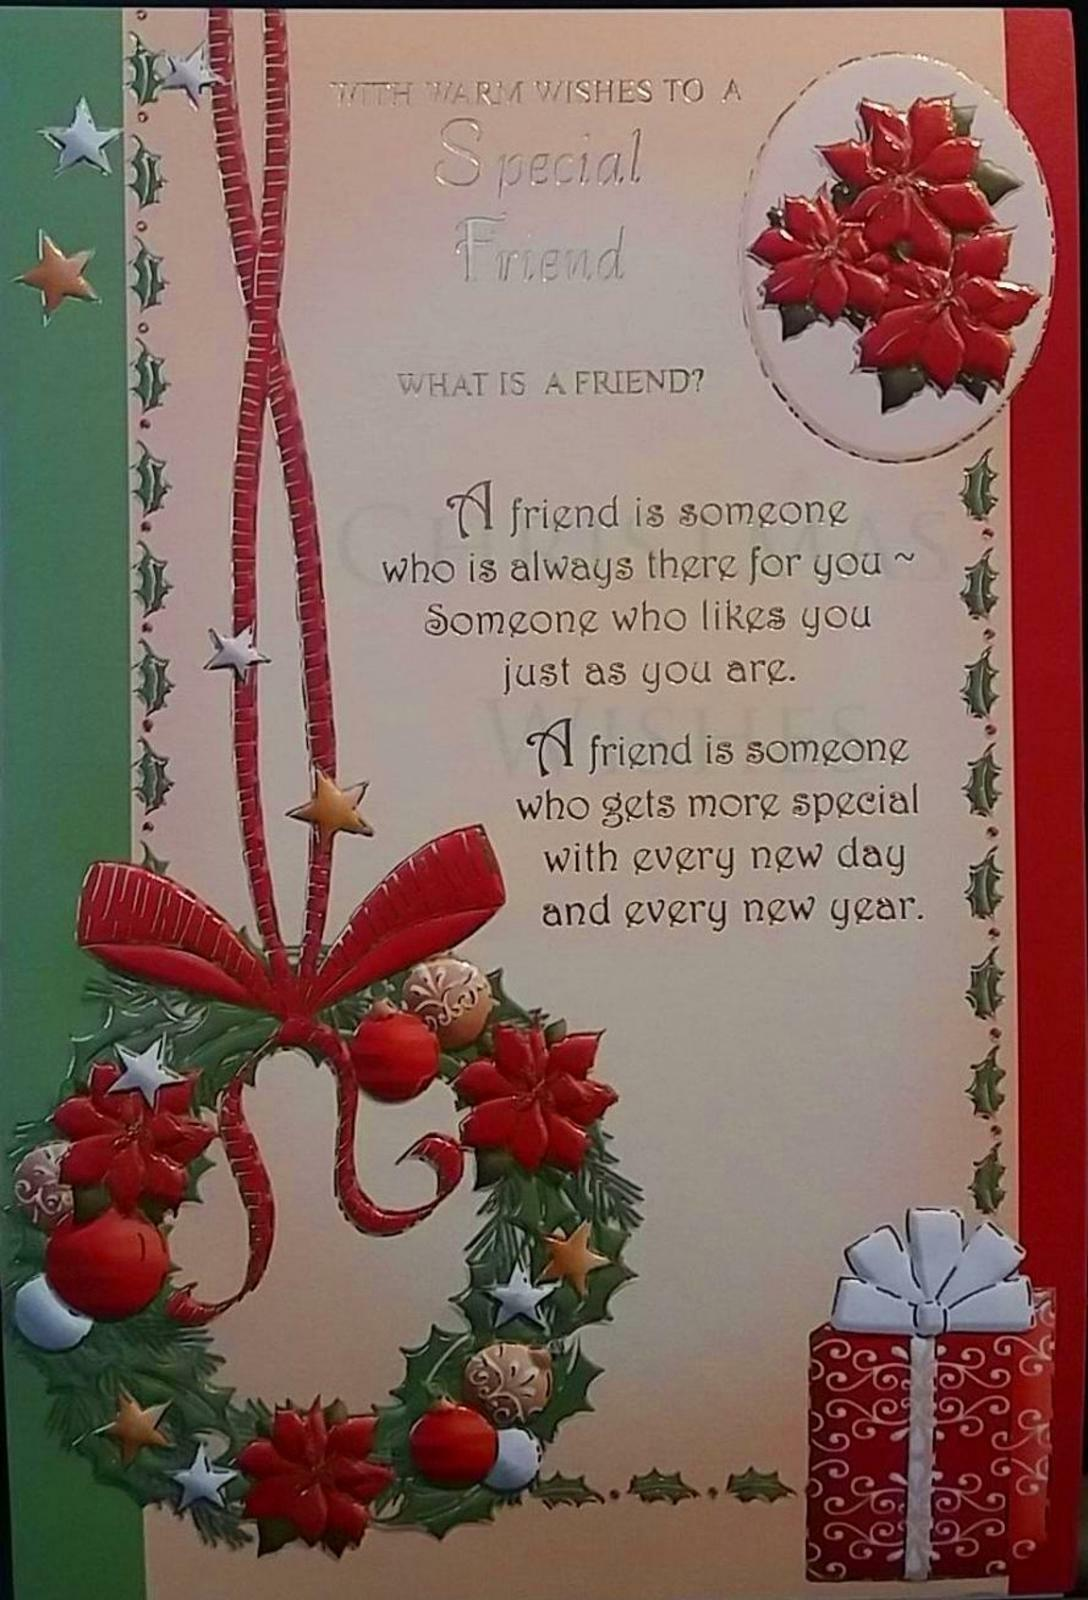 With Warm Wishes Special Friend Nice Sentimental Verse Christmas